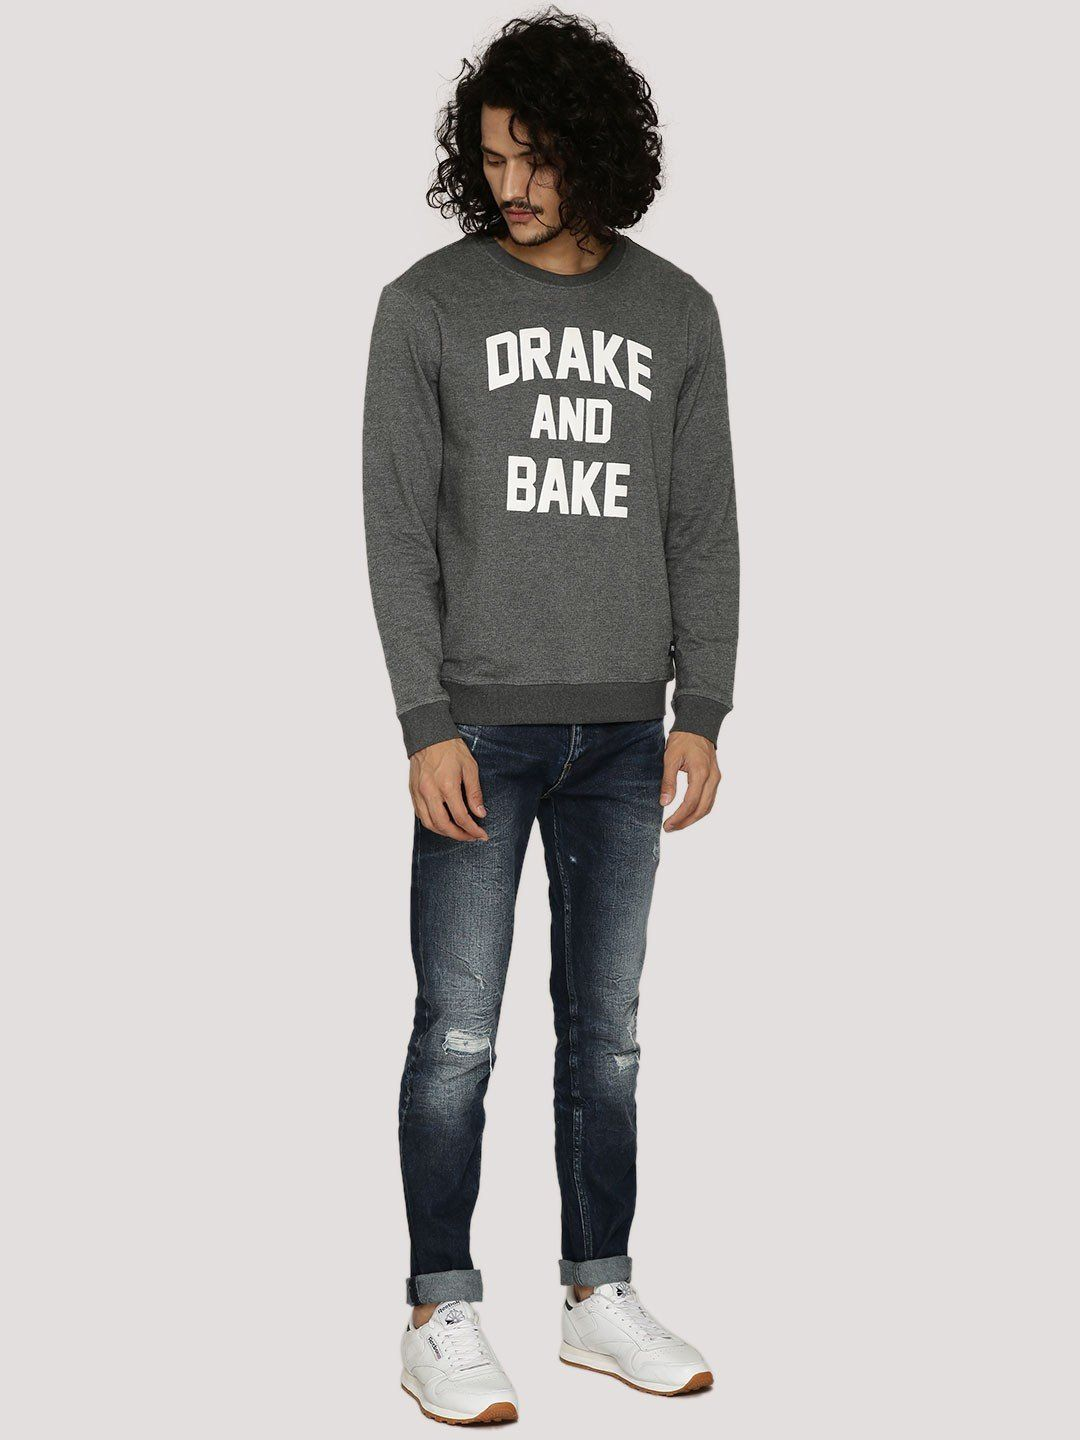 DRAKE AND BAKE Grey Melange Sweatshirt - Fighting Fame  - 5